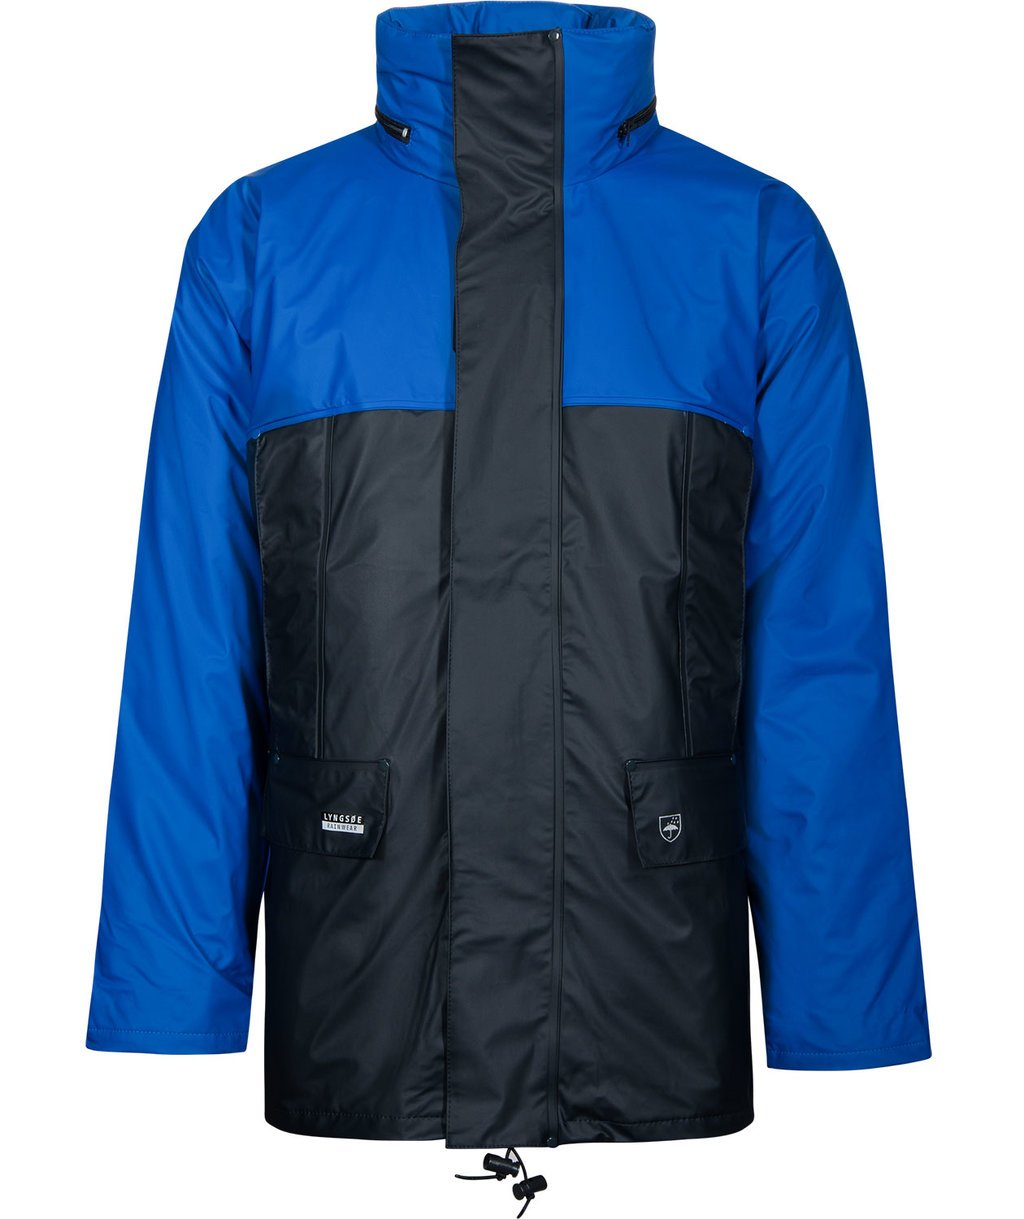 Lyngsøe winter jacket, Royal Blue/Marine